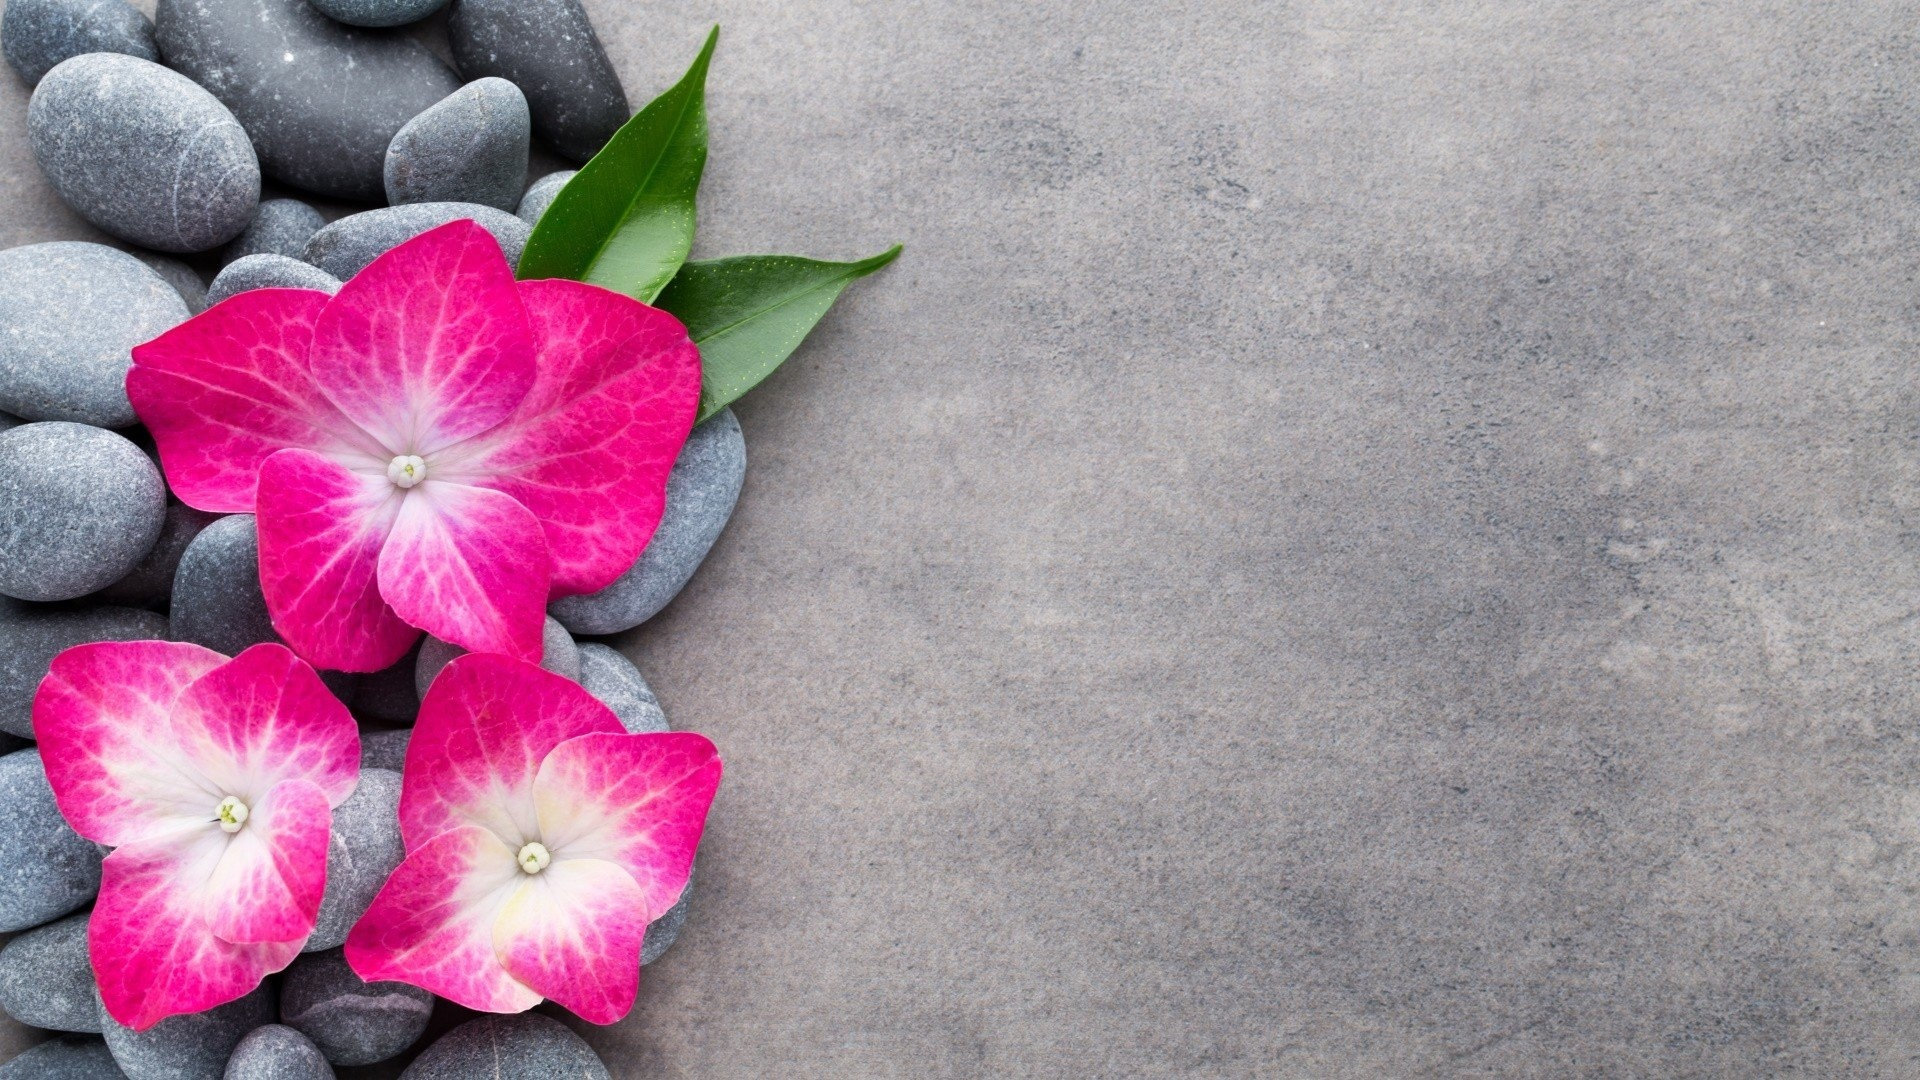 Flower And Stones Wallpaper